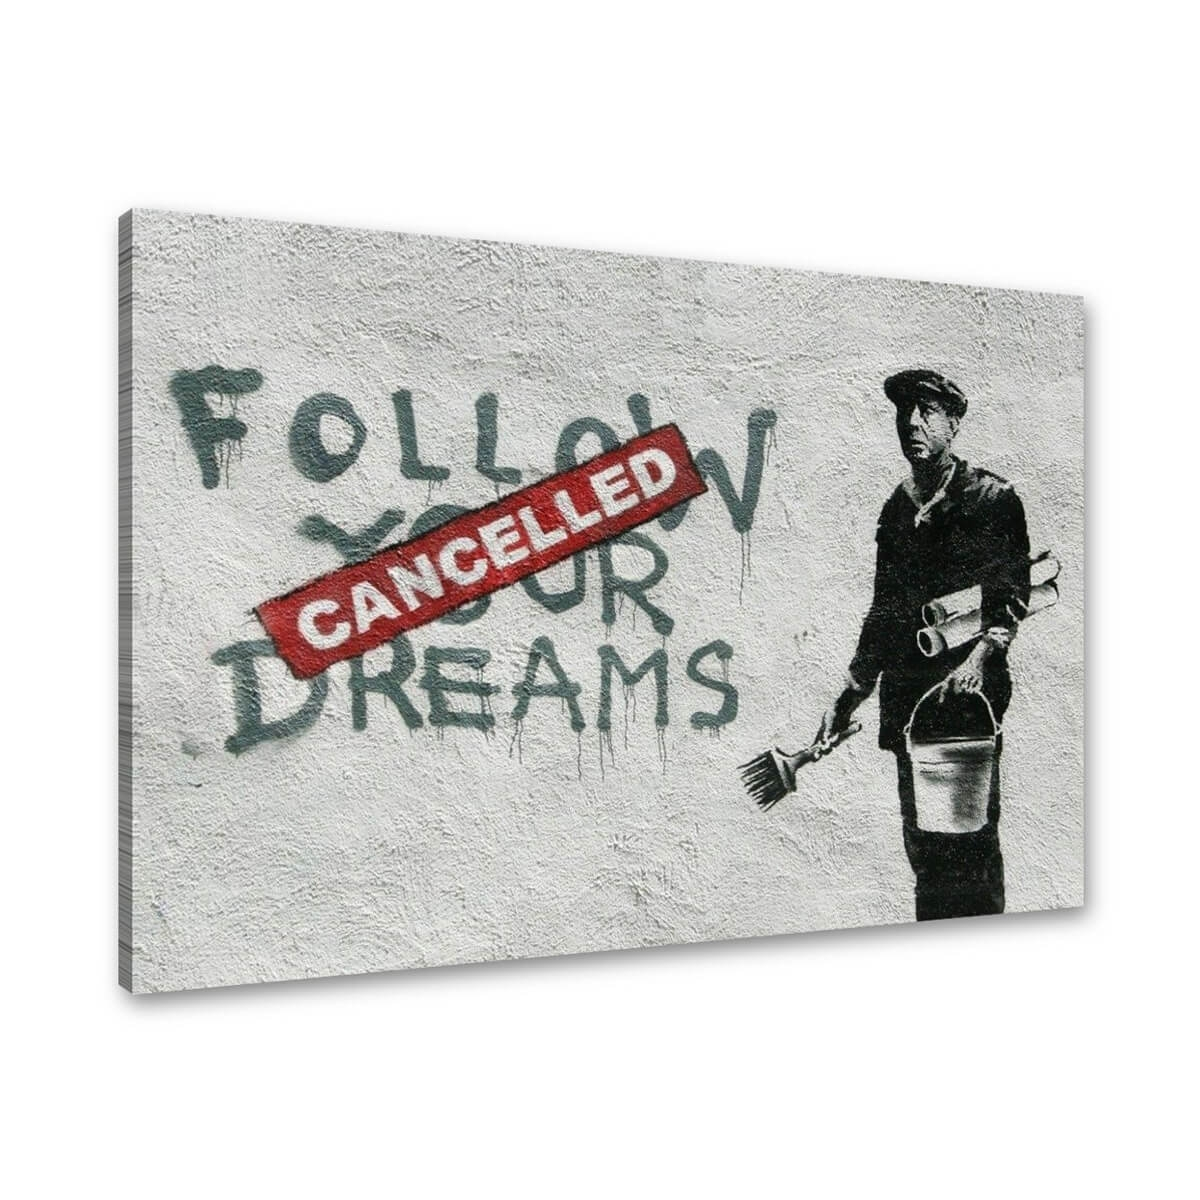 Tablou canvas graffiti arta stradala banksy follow your dreams pentru decor,  rama lemn, 80x60cm,  VSR4167